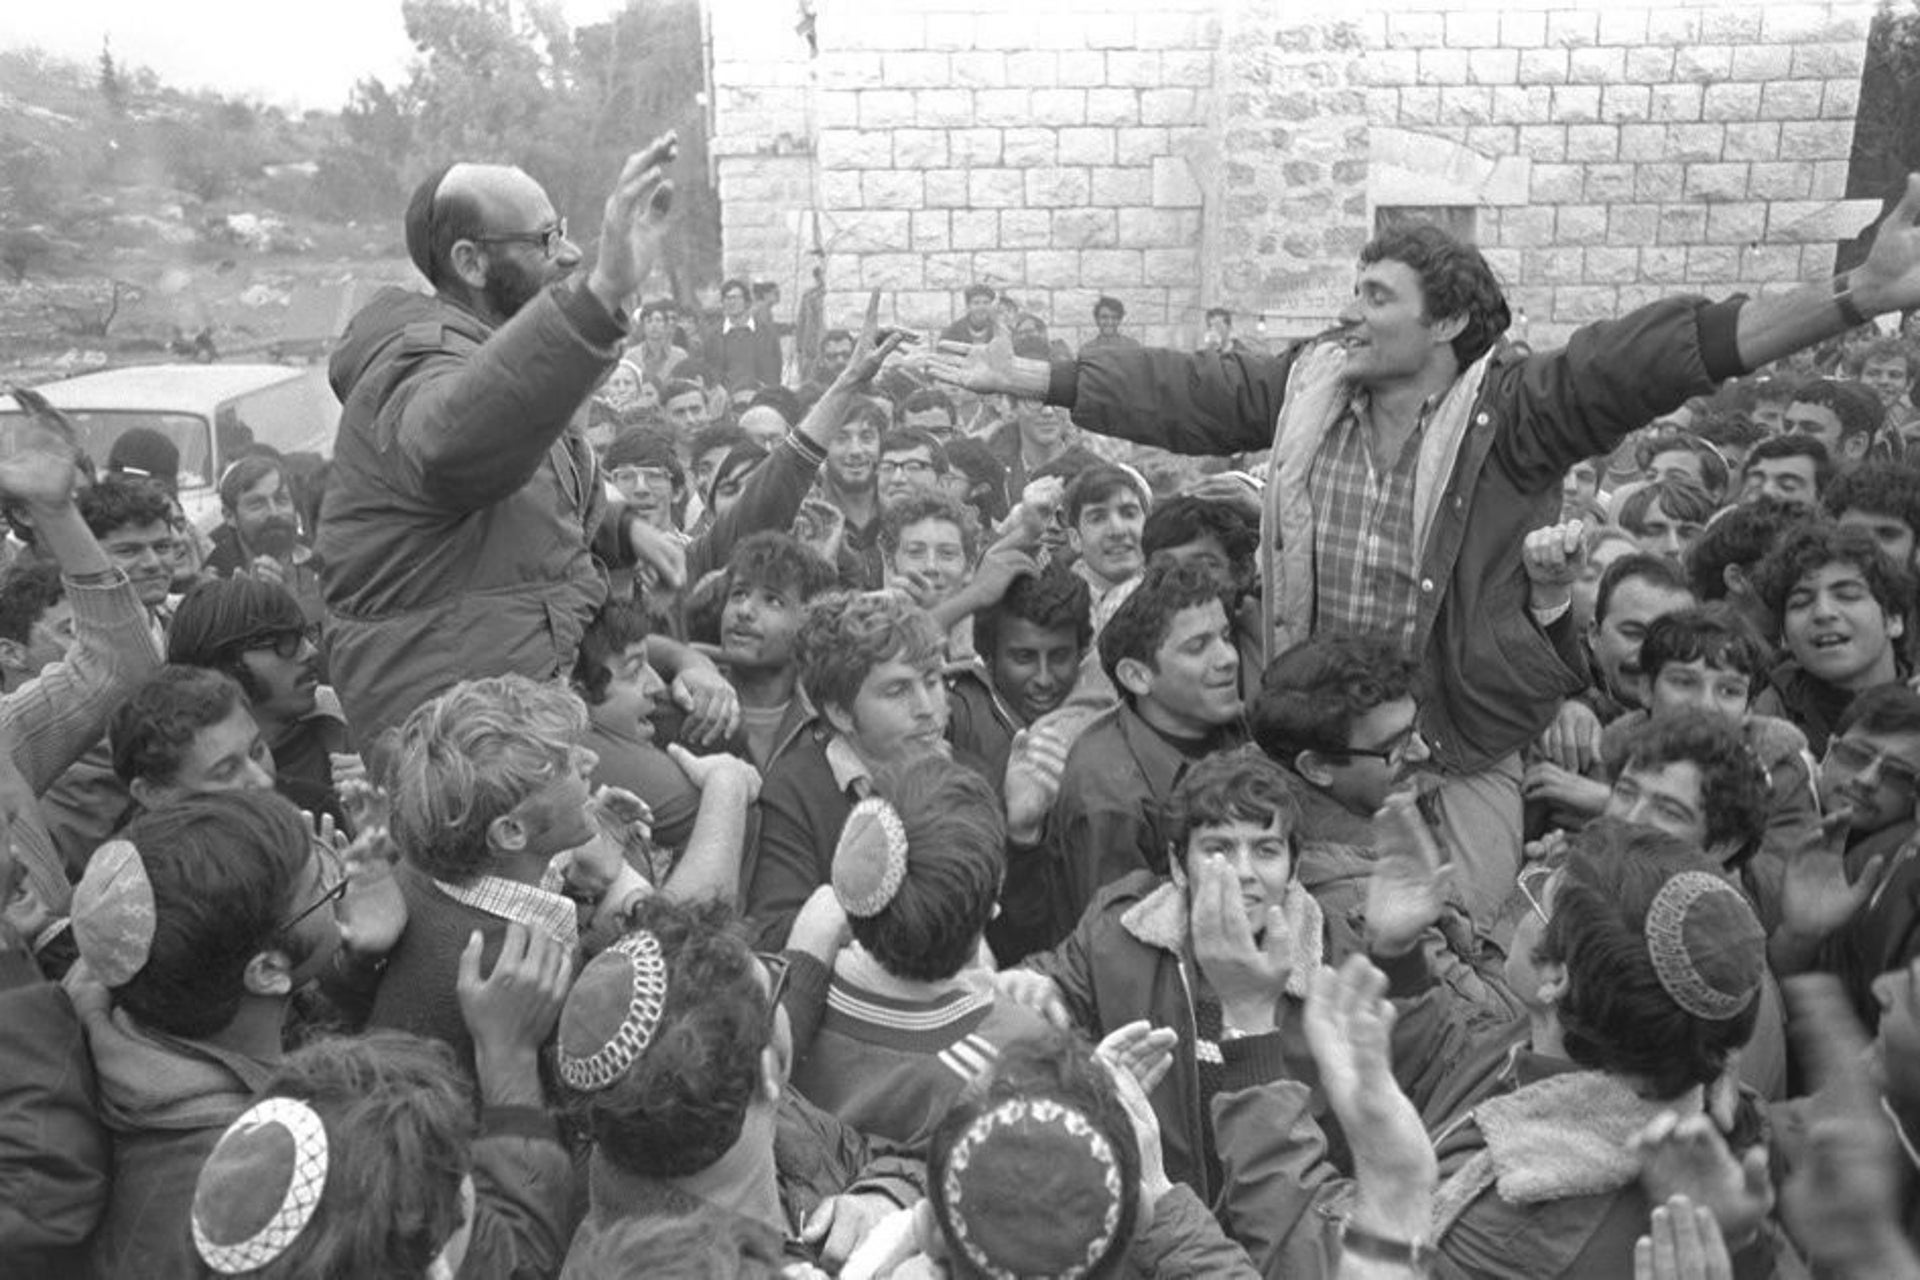 Rabbi Moshe Levinger, left, Hanan Porat and their followers celebrating the agreement with the left-wing Israeli government that settlers could stay in the West Bank, December 1975.